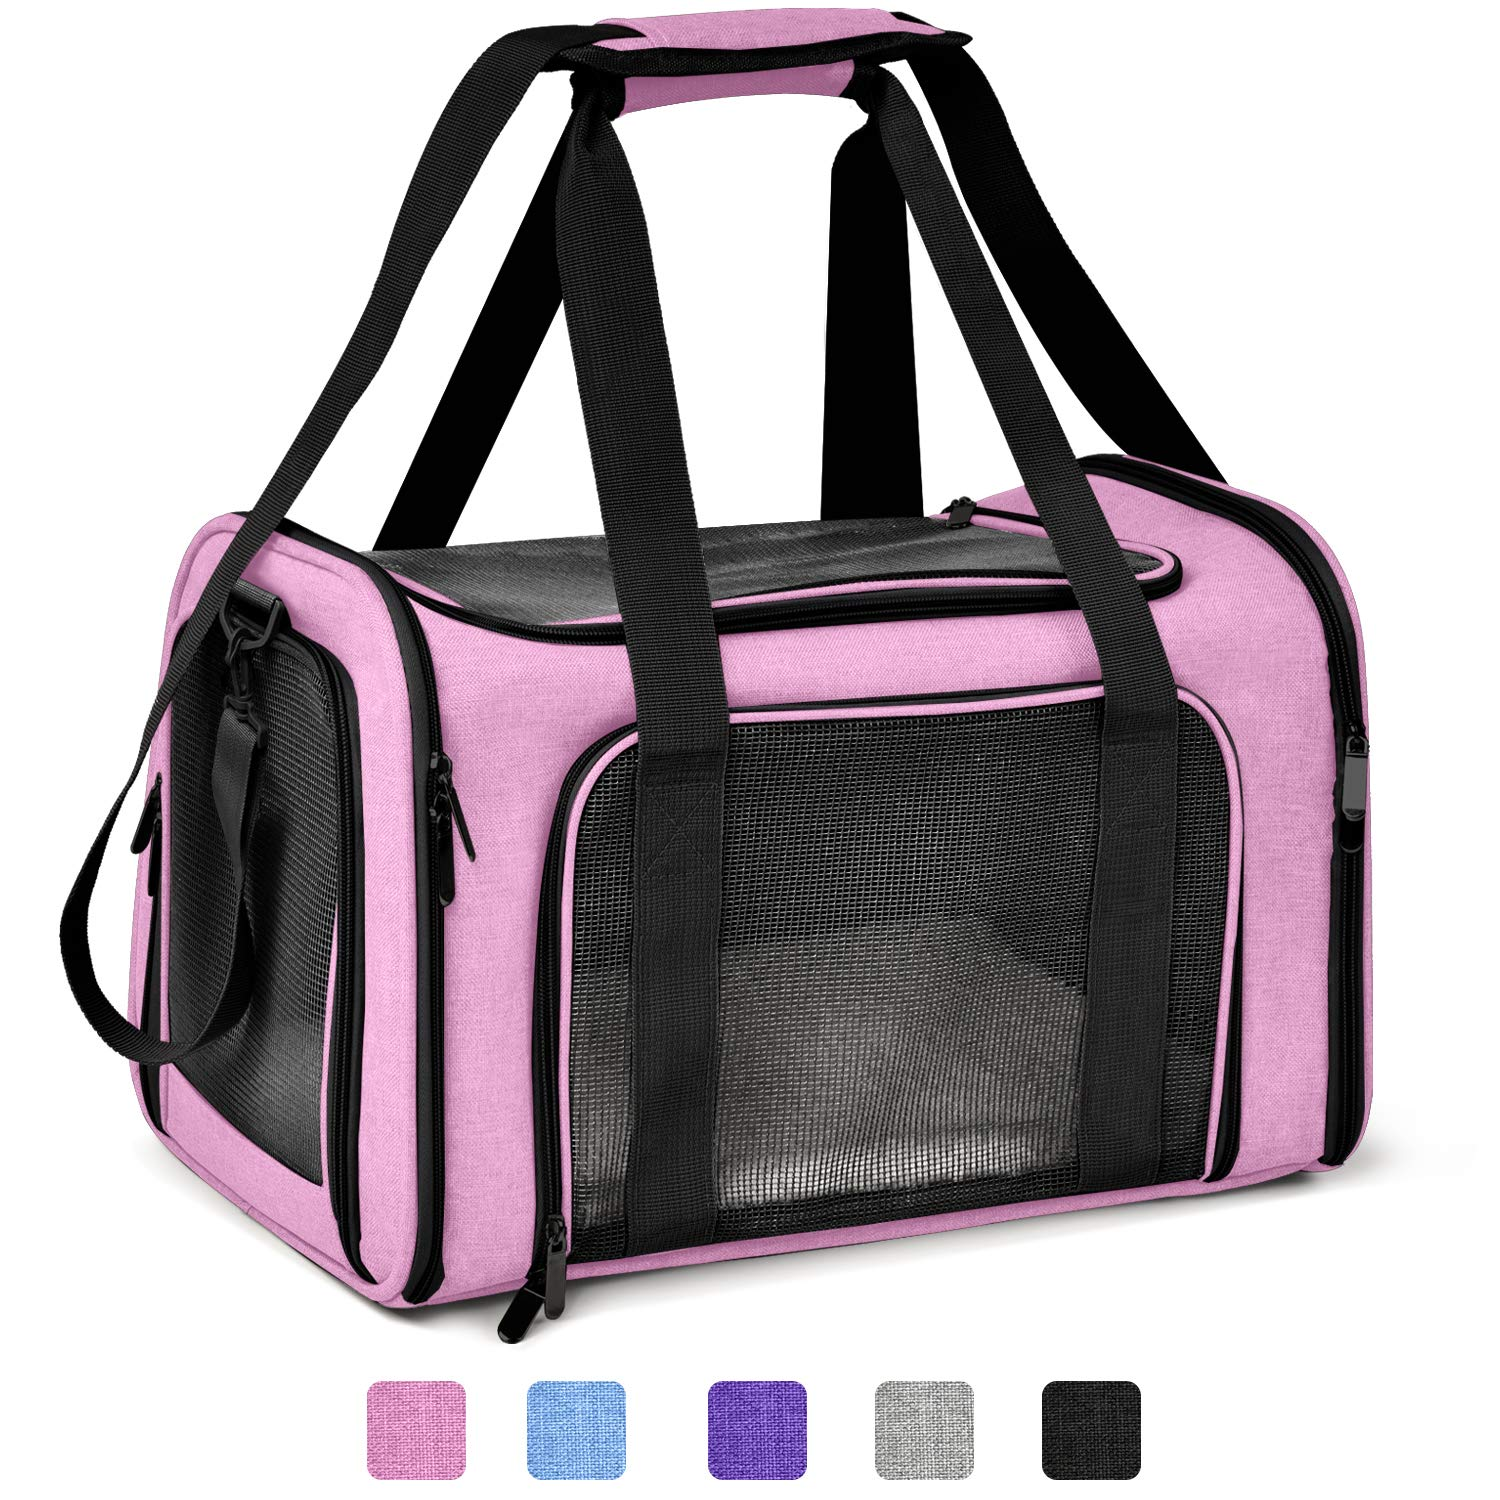 Henkelion Cat Carriers Dog Carrier Pet Carrier for Small Medium Cats Dogs Puppies up to 15 Lbs, TSA Airline Approved Small Dog Carrier Soft Sided, Collapsible Waterproof Travel Puppy Carrier - Pink by Henkelion